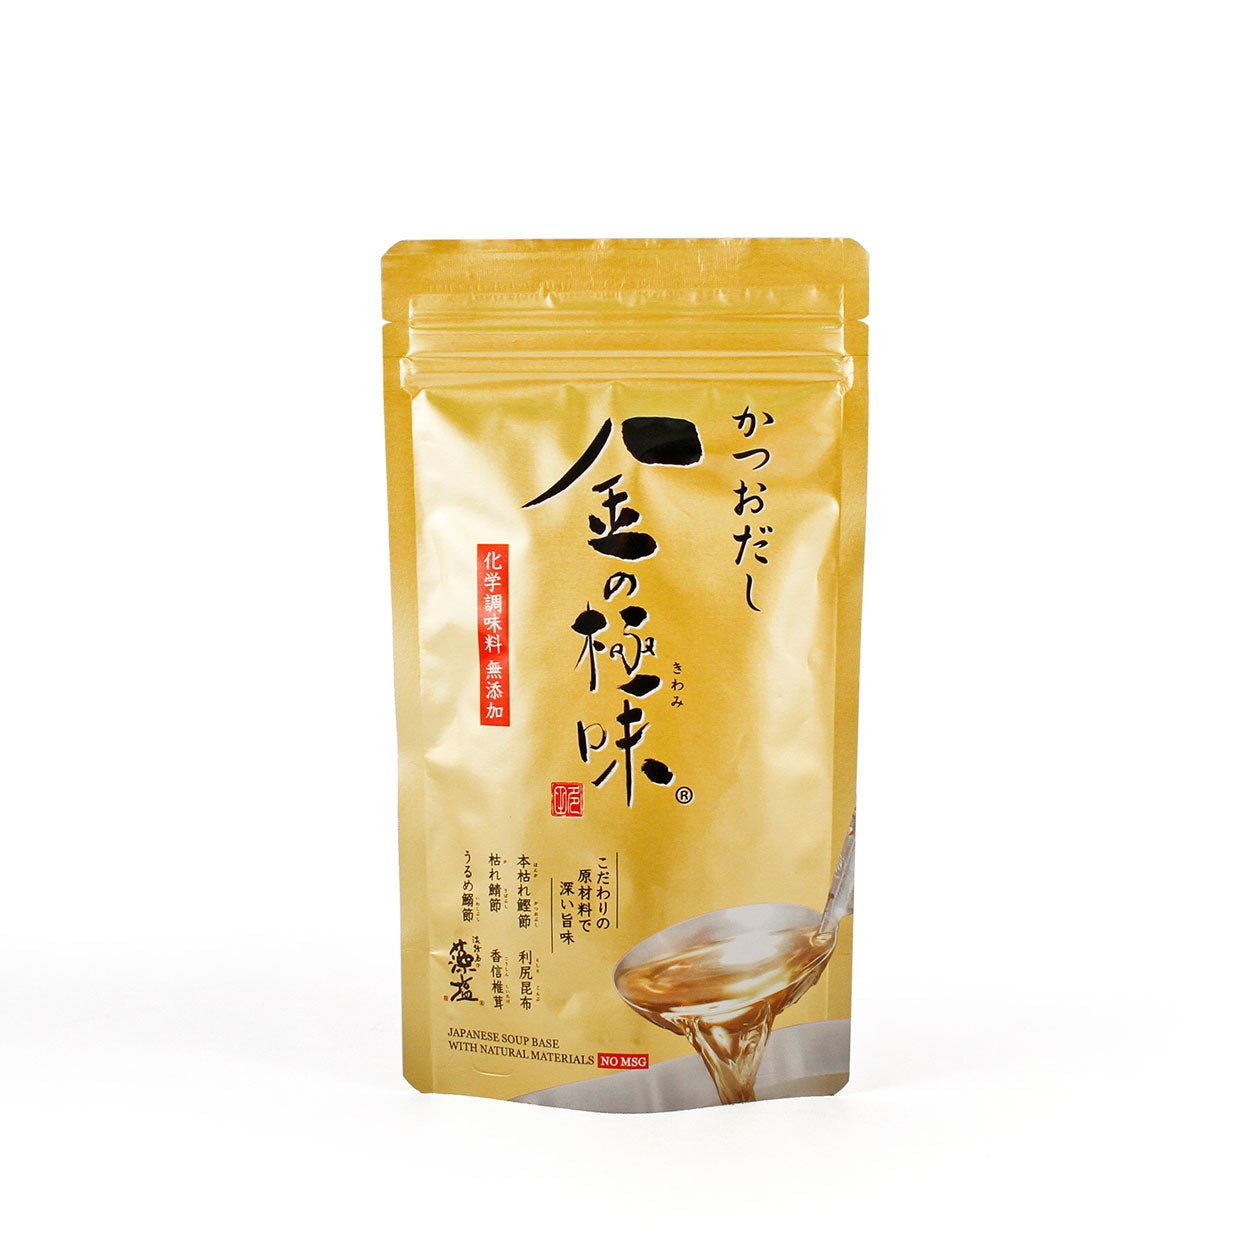 No MSG Kin no Kiwami Dashi Packs - Dried Bonito, Kelp, Shiitake Mushroom, Mackerel & Dried Herring 2.05 oz (0.3 oz x 7 packs)